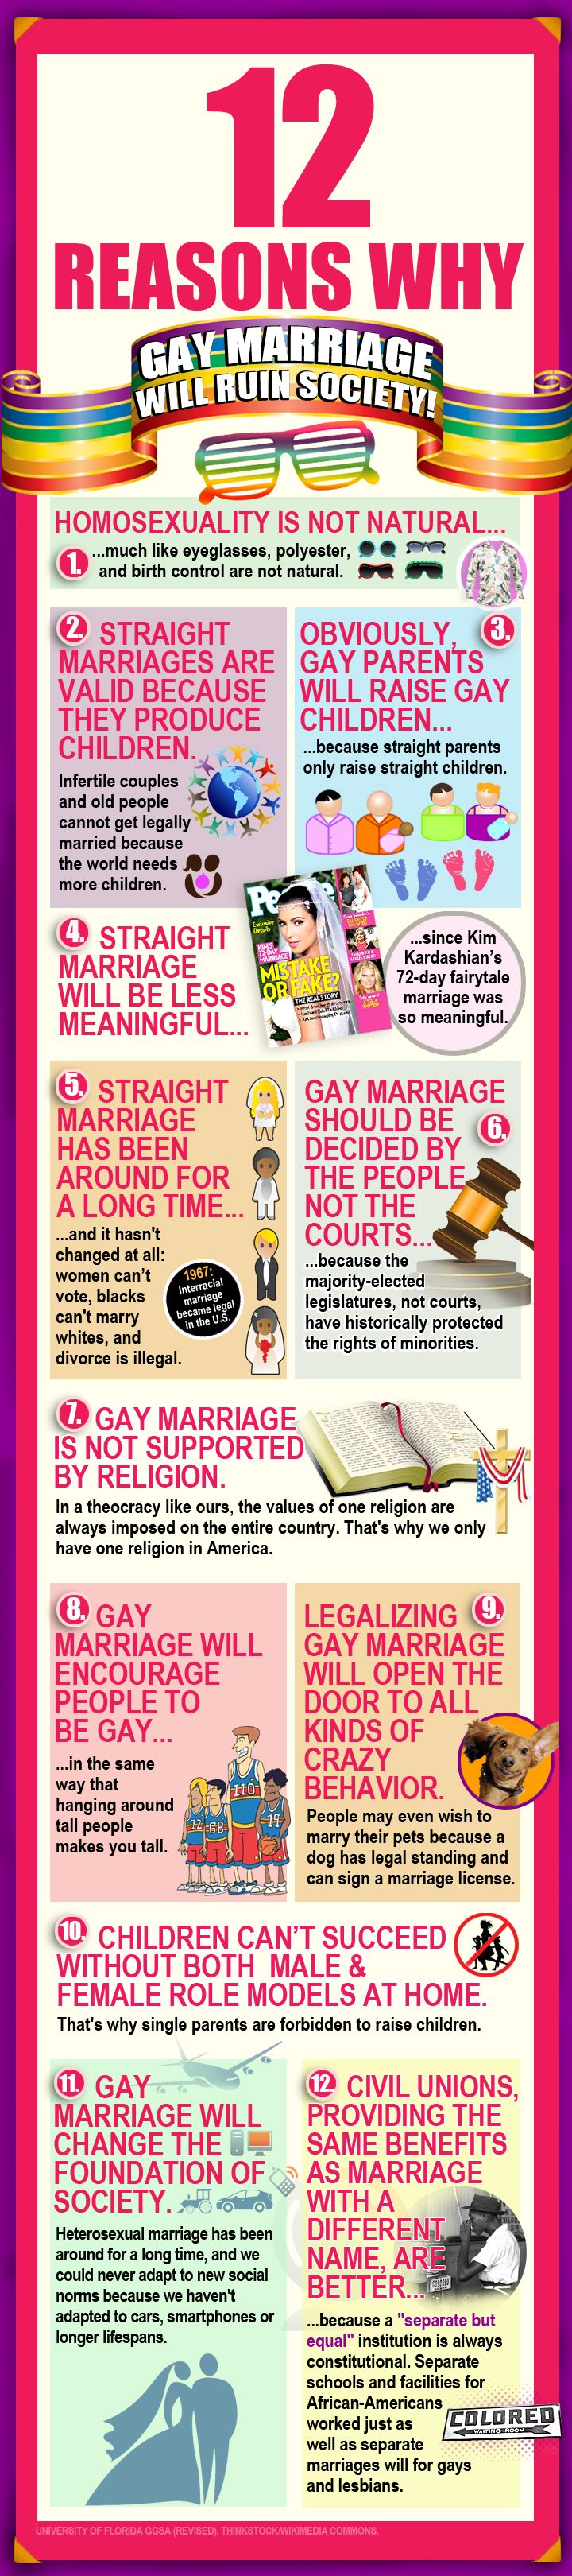 12 (funny) reasons gay marriage will ruin society (note the sarcasm.) Love it!